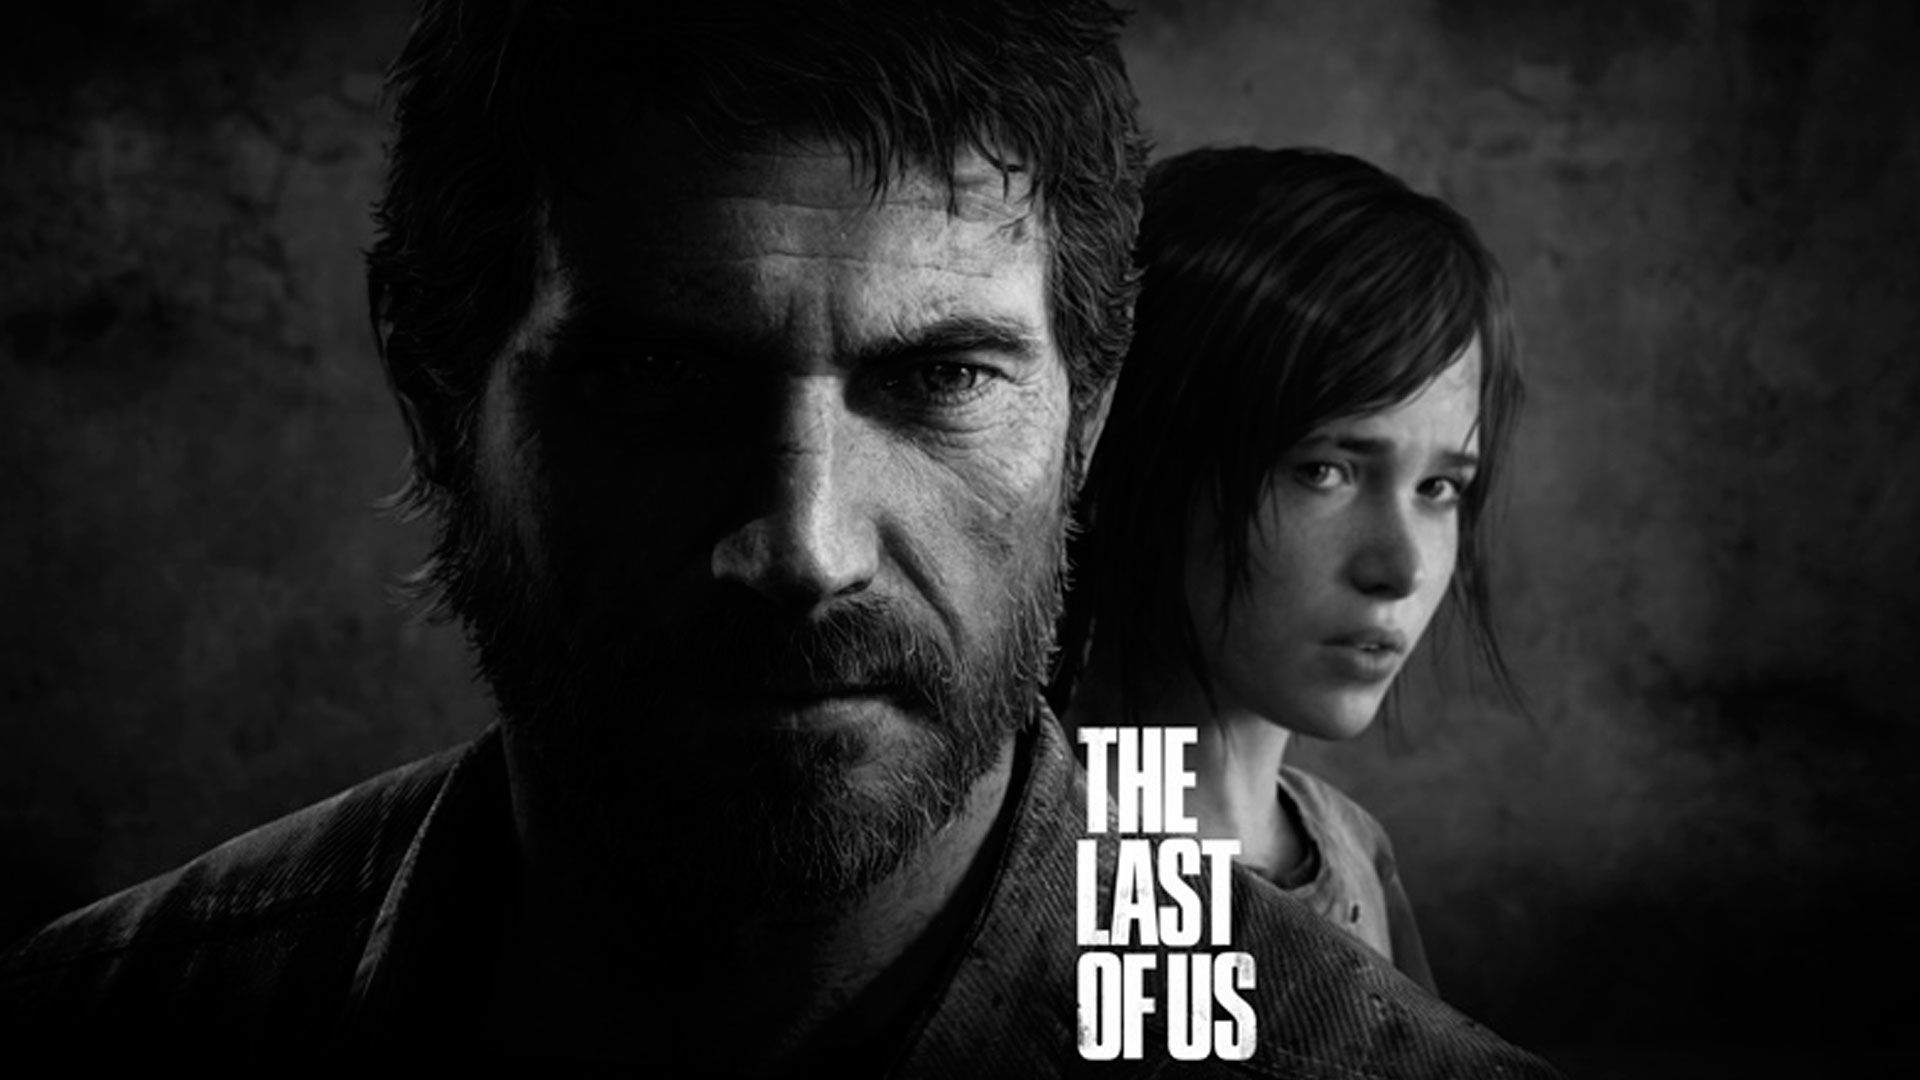 Wallpaper Hd De Joel Y Ellie Williams The Last Of Us